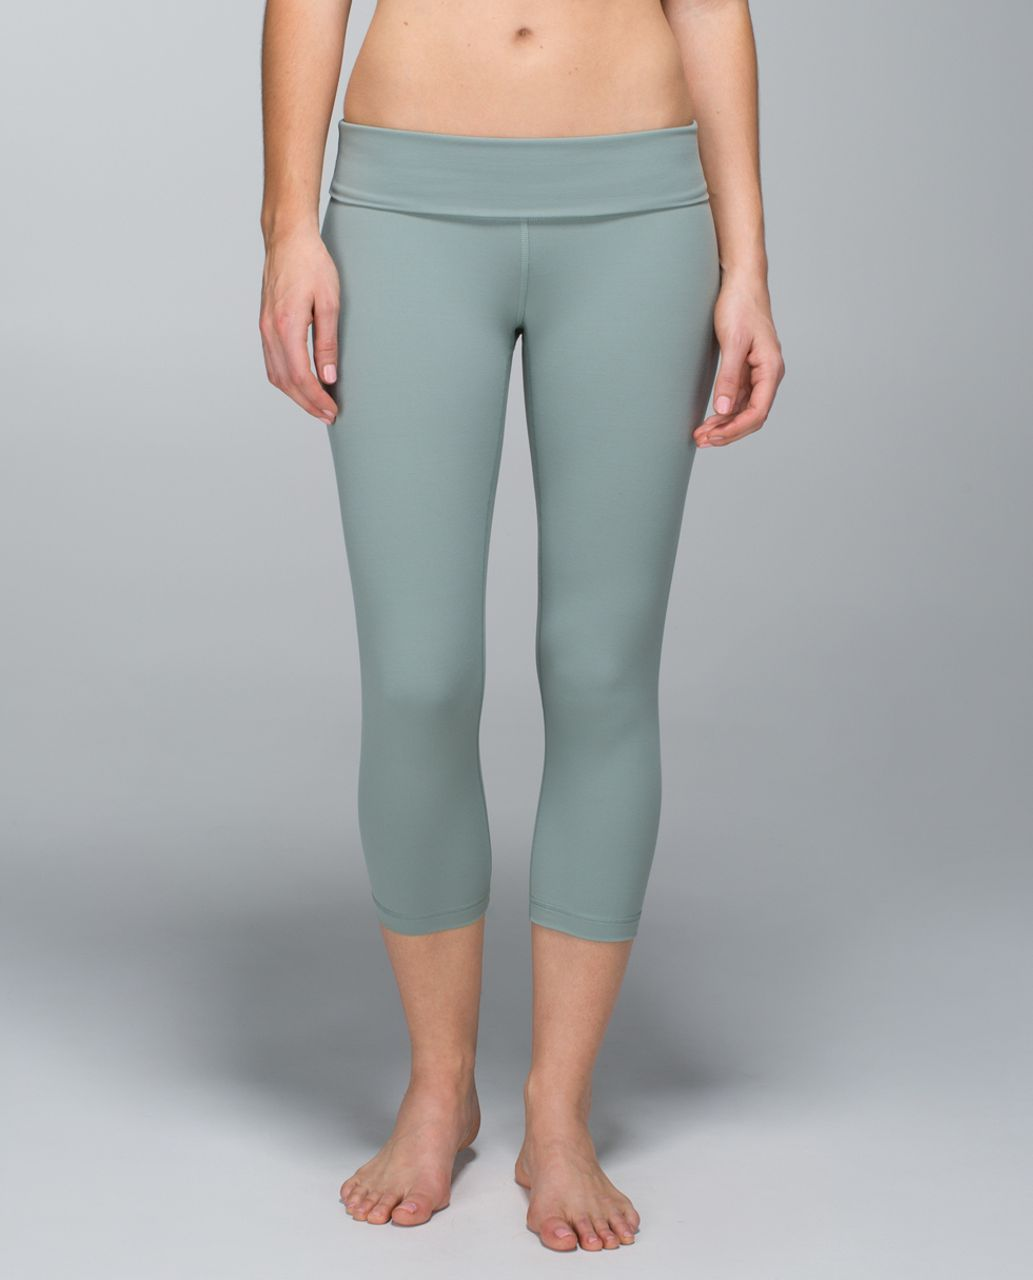 Lululemon Wunder Under Crop *Full-On Luon (Roll Down) - Earl Grey